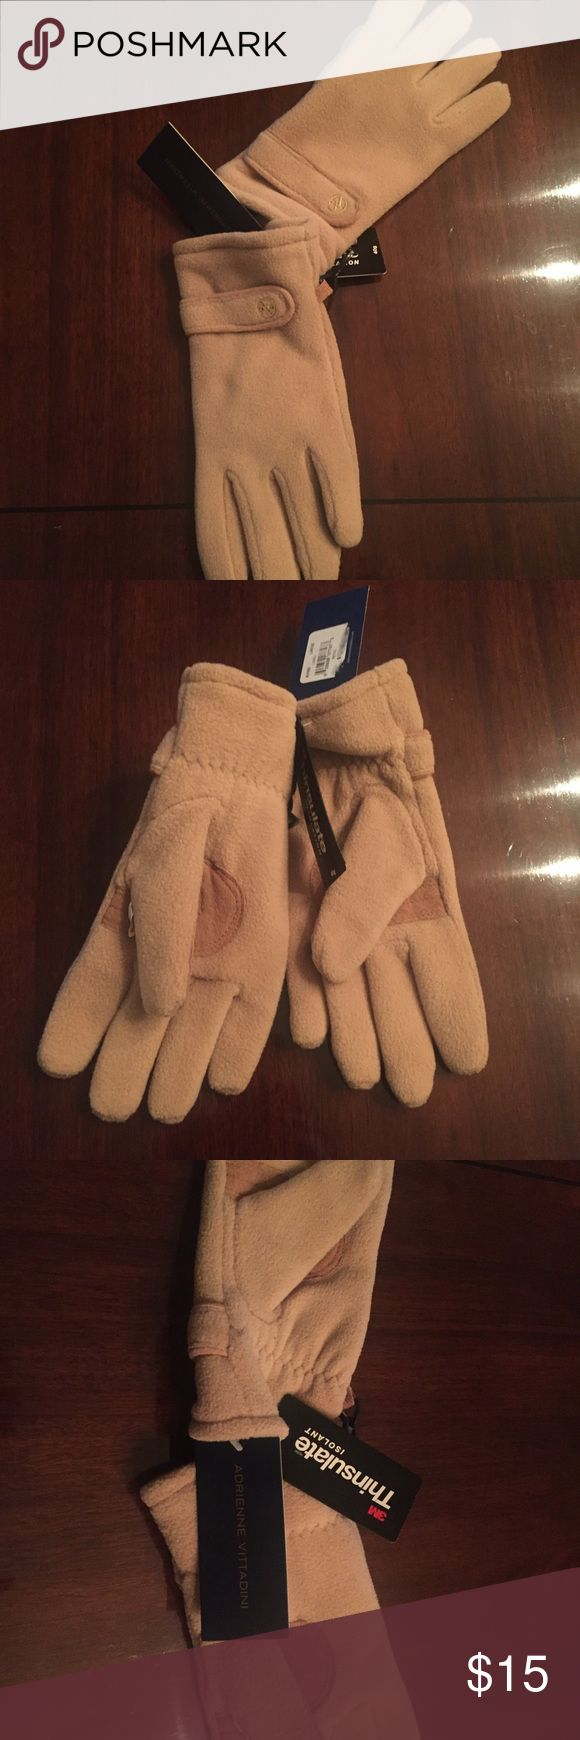 """NWT Adrienne Vittadini Tan """"Thinsulate"""" Gloves Tan Adrienne Vittadini """"Thinsulate"""" Gloves. Very warm, fleece lined. Never worn. Size Large. Adrienne Vittadini Accessories Gloves & Mittens"""